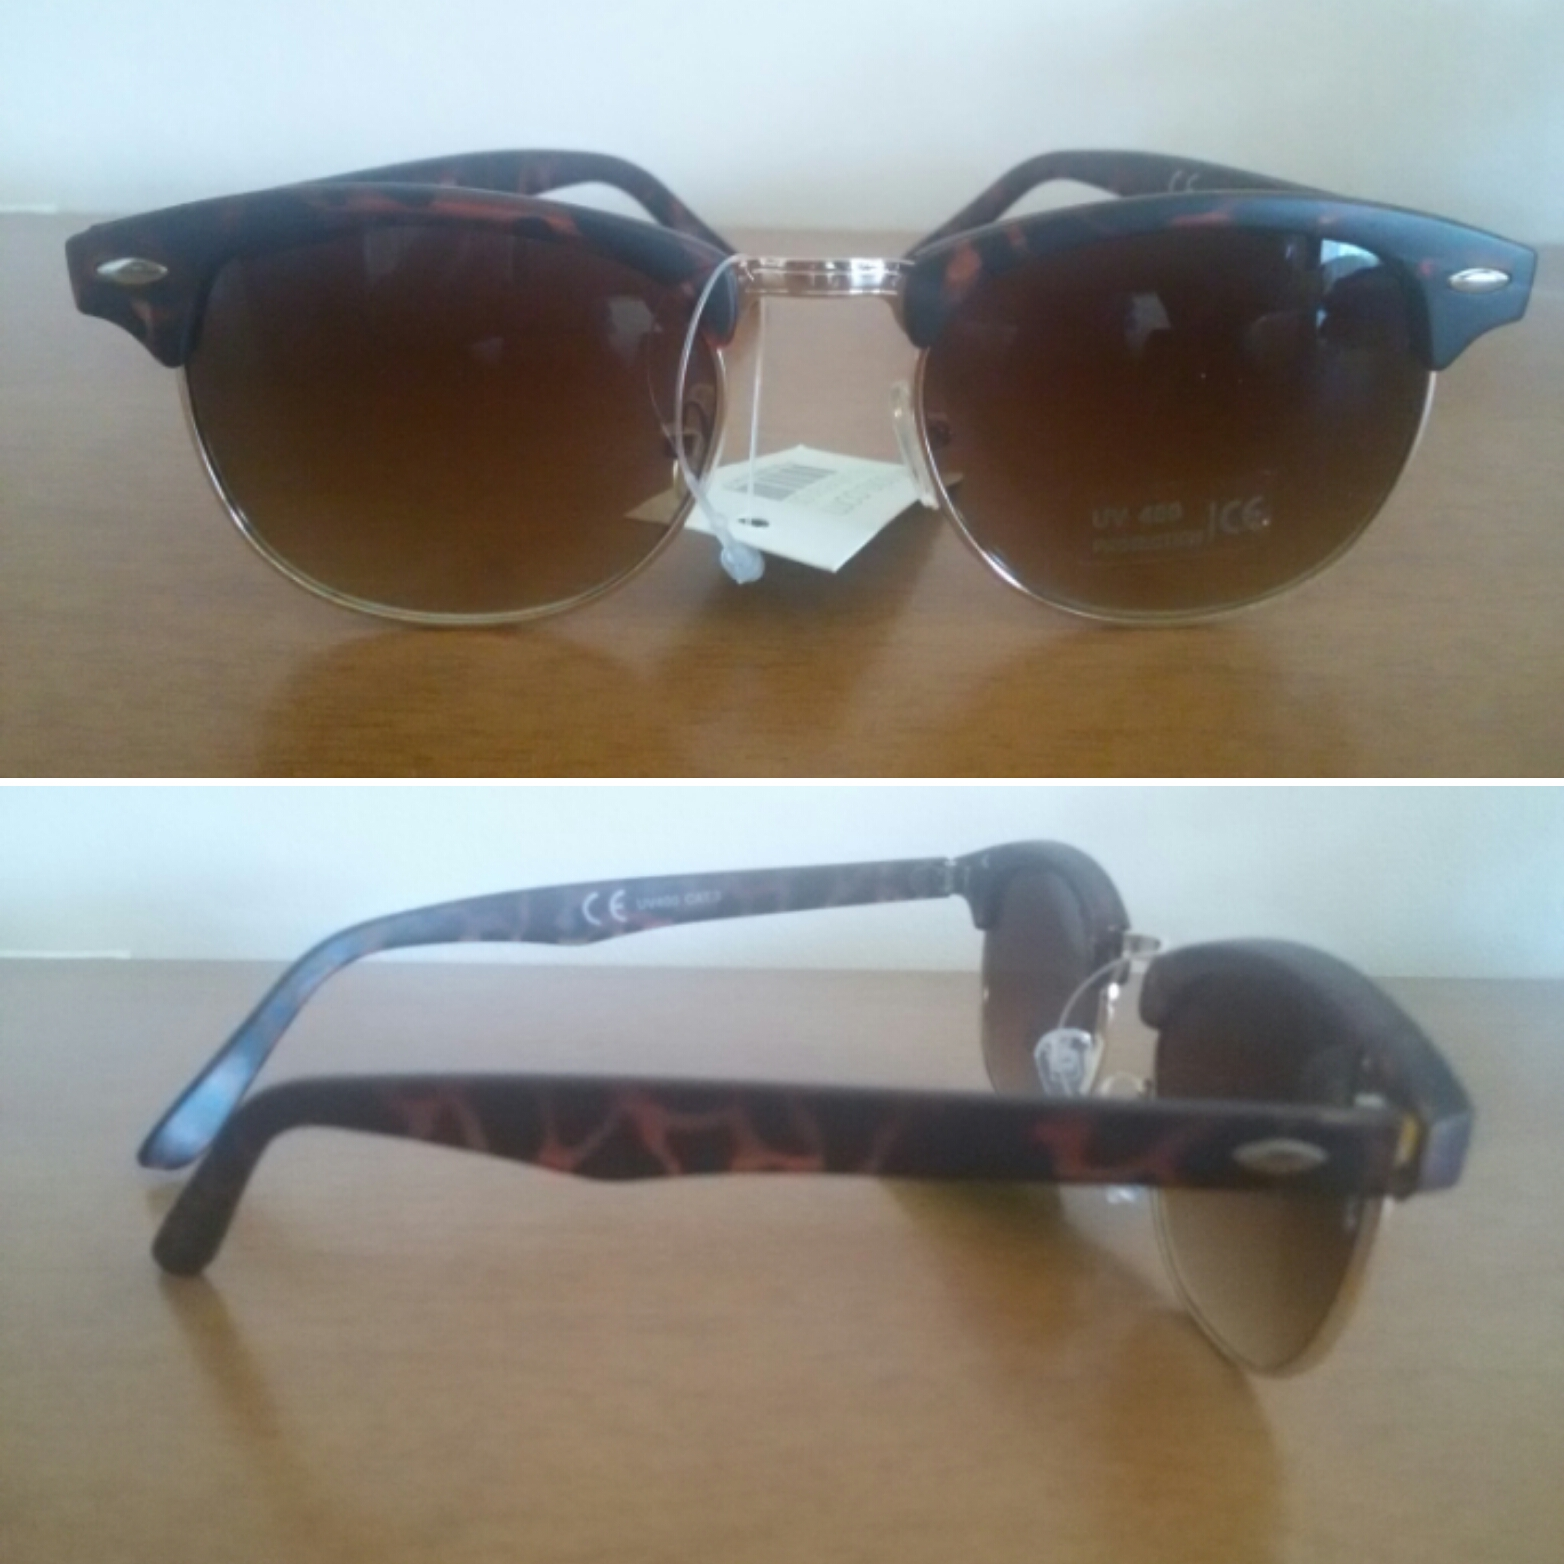 occhiali da sole cheapass sunglasses